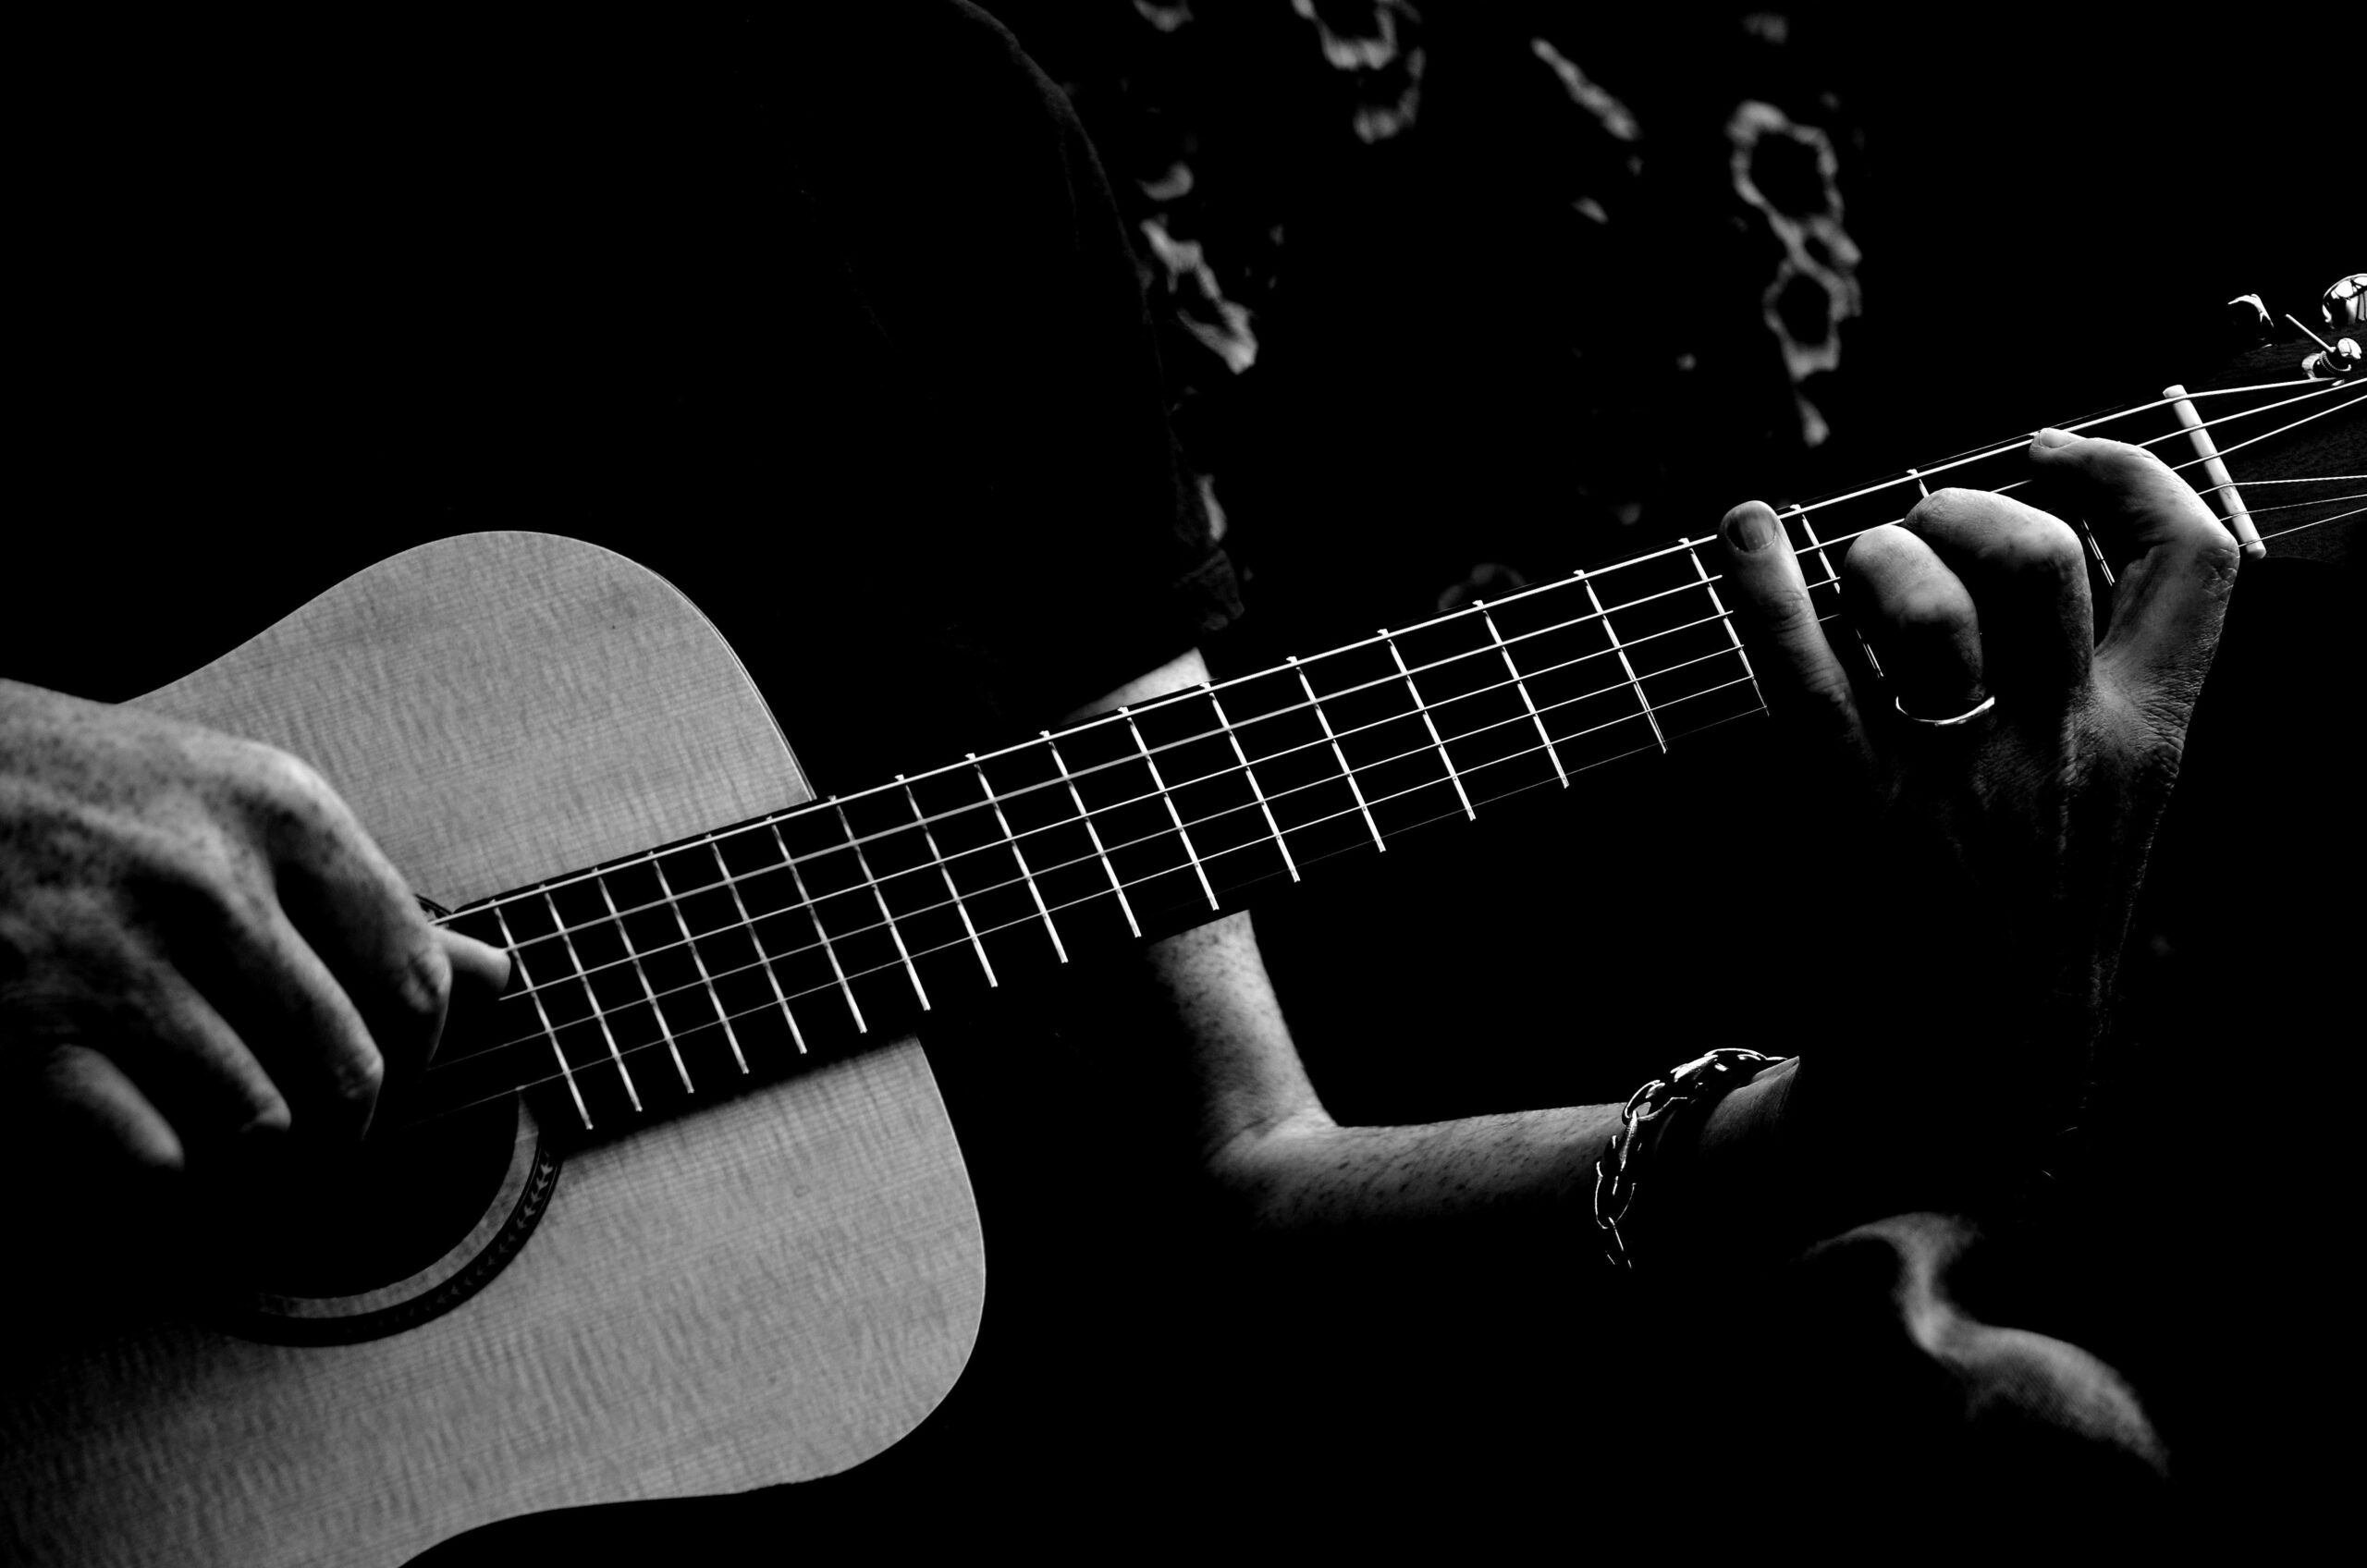 Person Playing Acoustic Guitar | The Top 9 Ways To Practice Acoustic Guitar Techniques